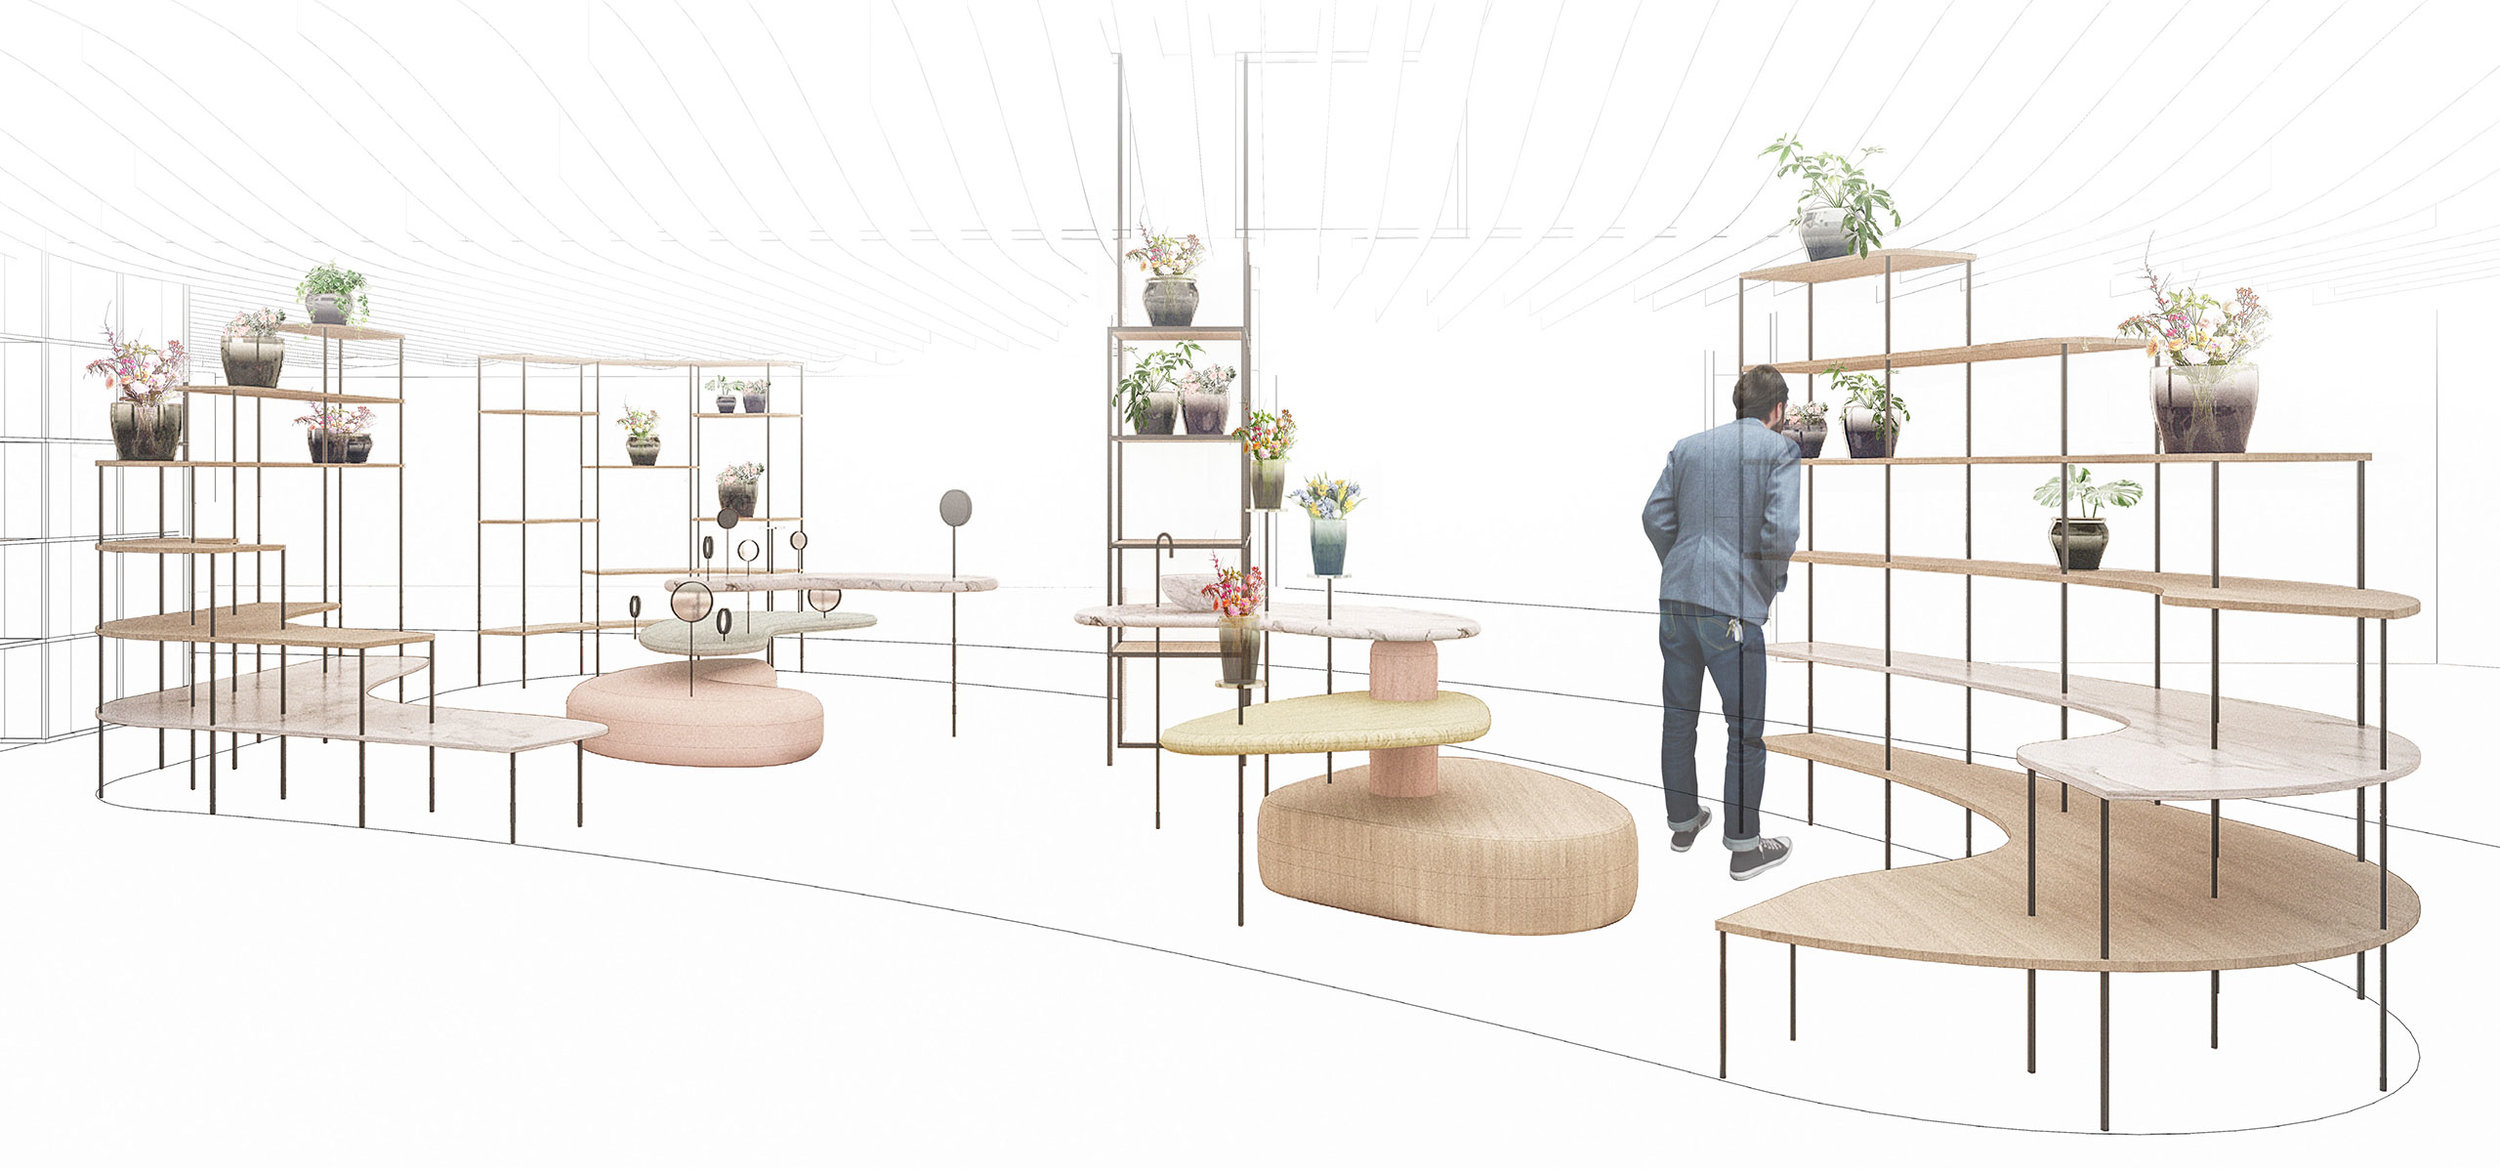 Illustration of the nature zone designed for TAX FREE at Copenhagen Airport dominated by wooden furniture and natural tones